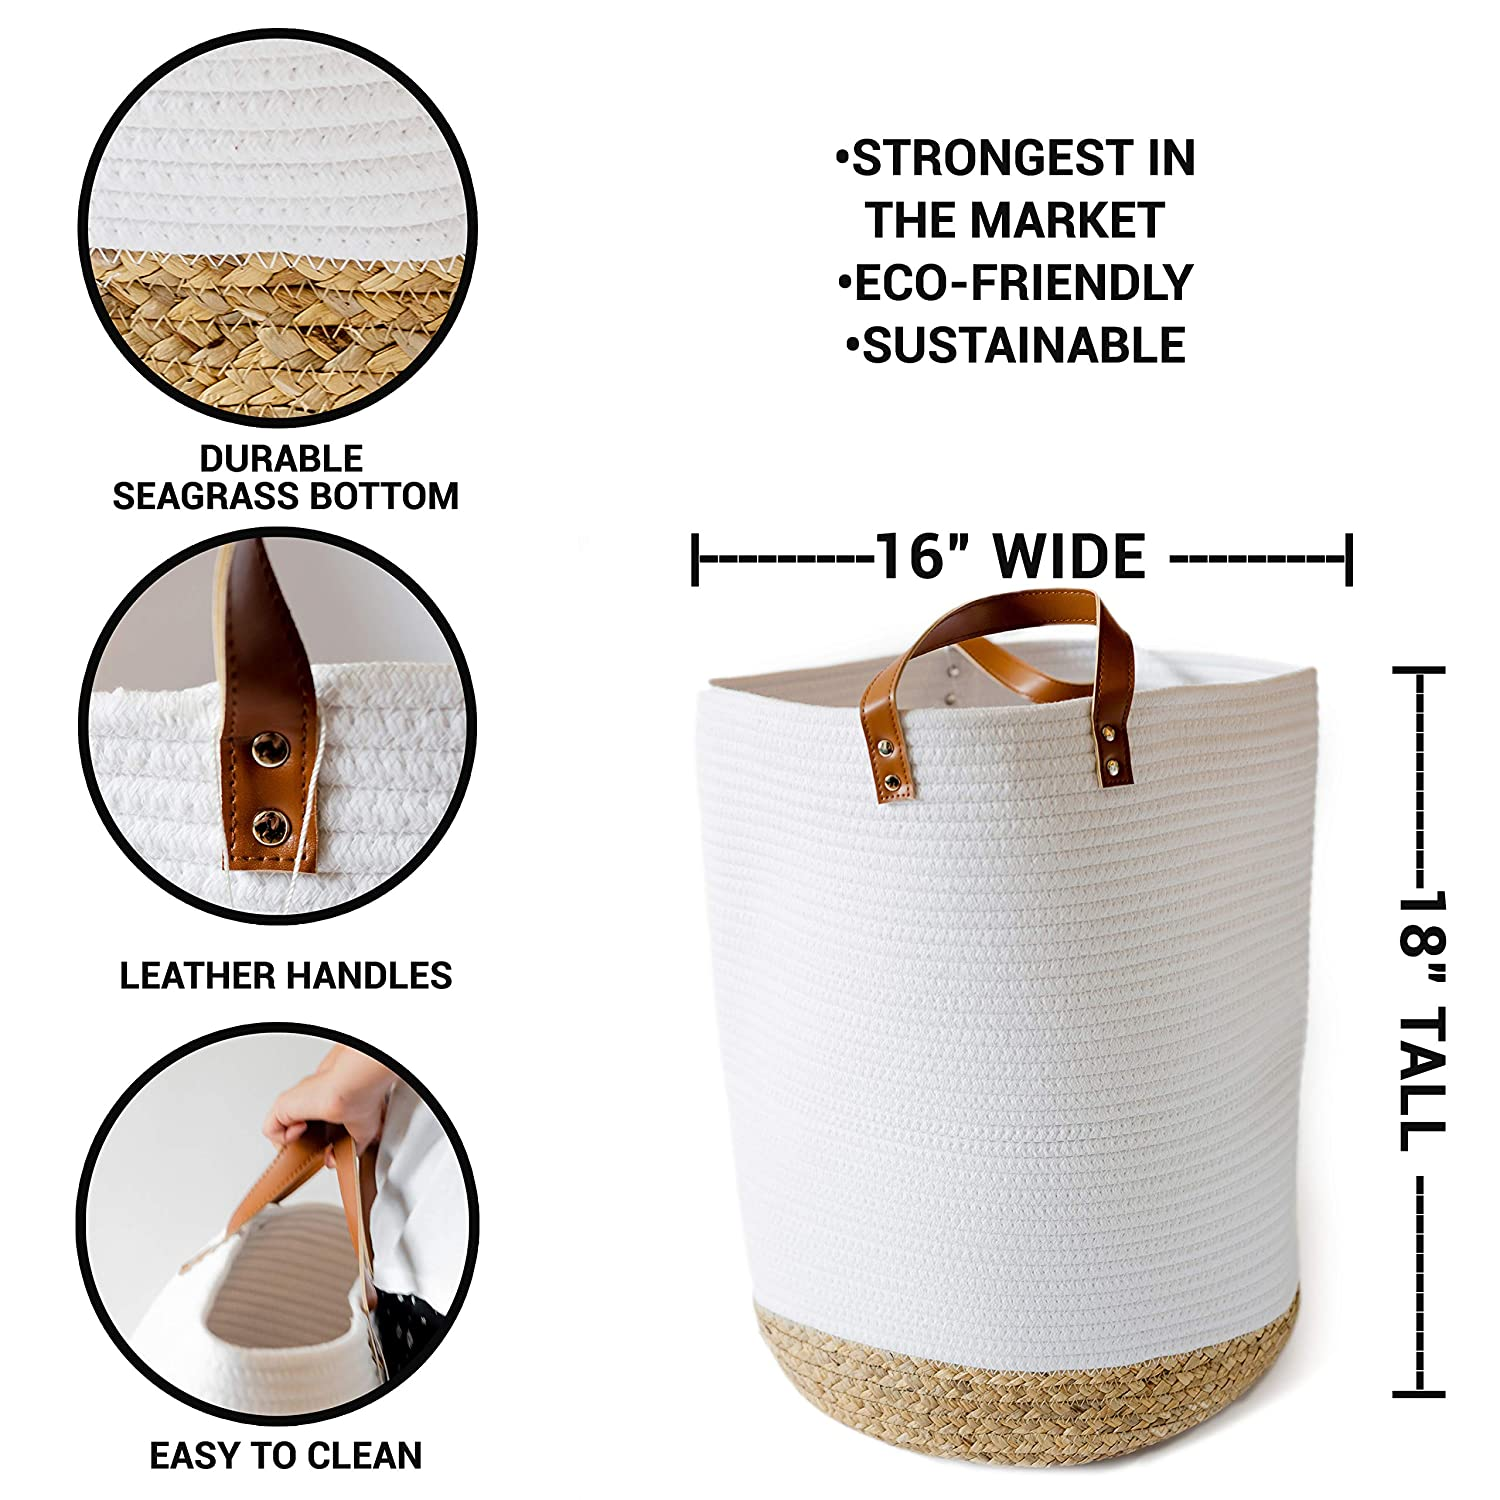 Extra Large Cotton Rope Basket – 18 x 16 – Woven Baby Laundry Basket for Blankets Seagrass Bottom – Rope Basket – Living Room Decor and Storage Bins with Heavy Duty Handles Leather